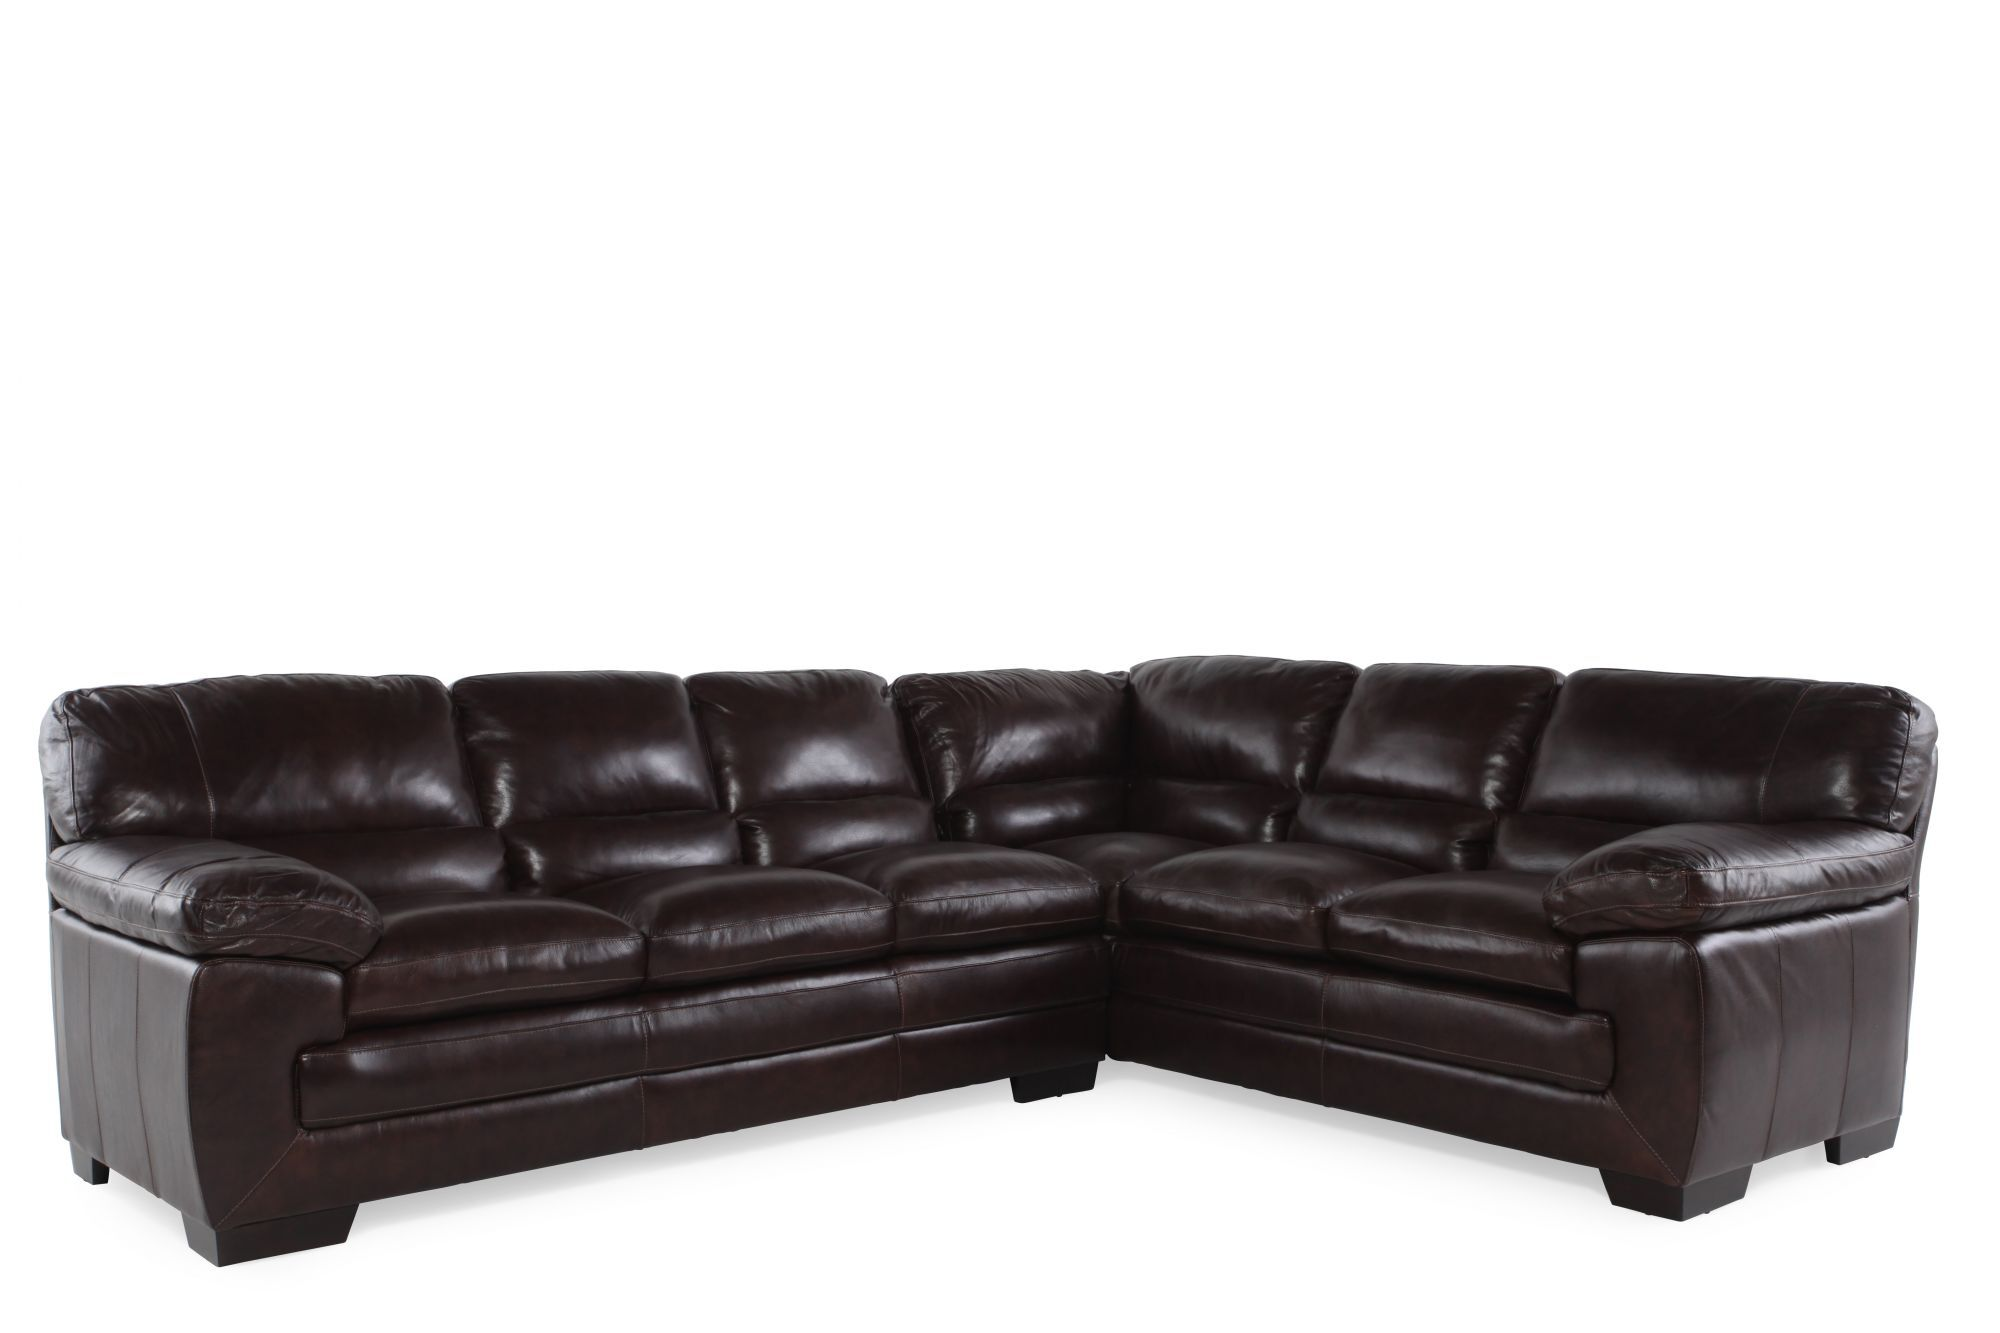 sectional sofas modular sectionals mathis brothers rh mathisbrothers com